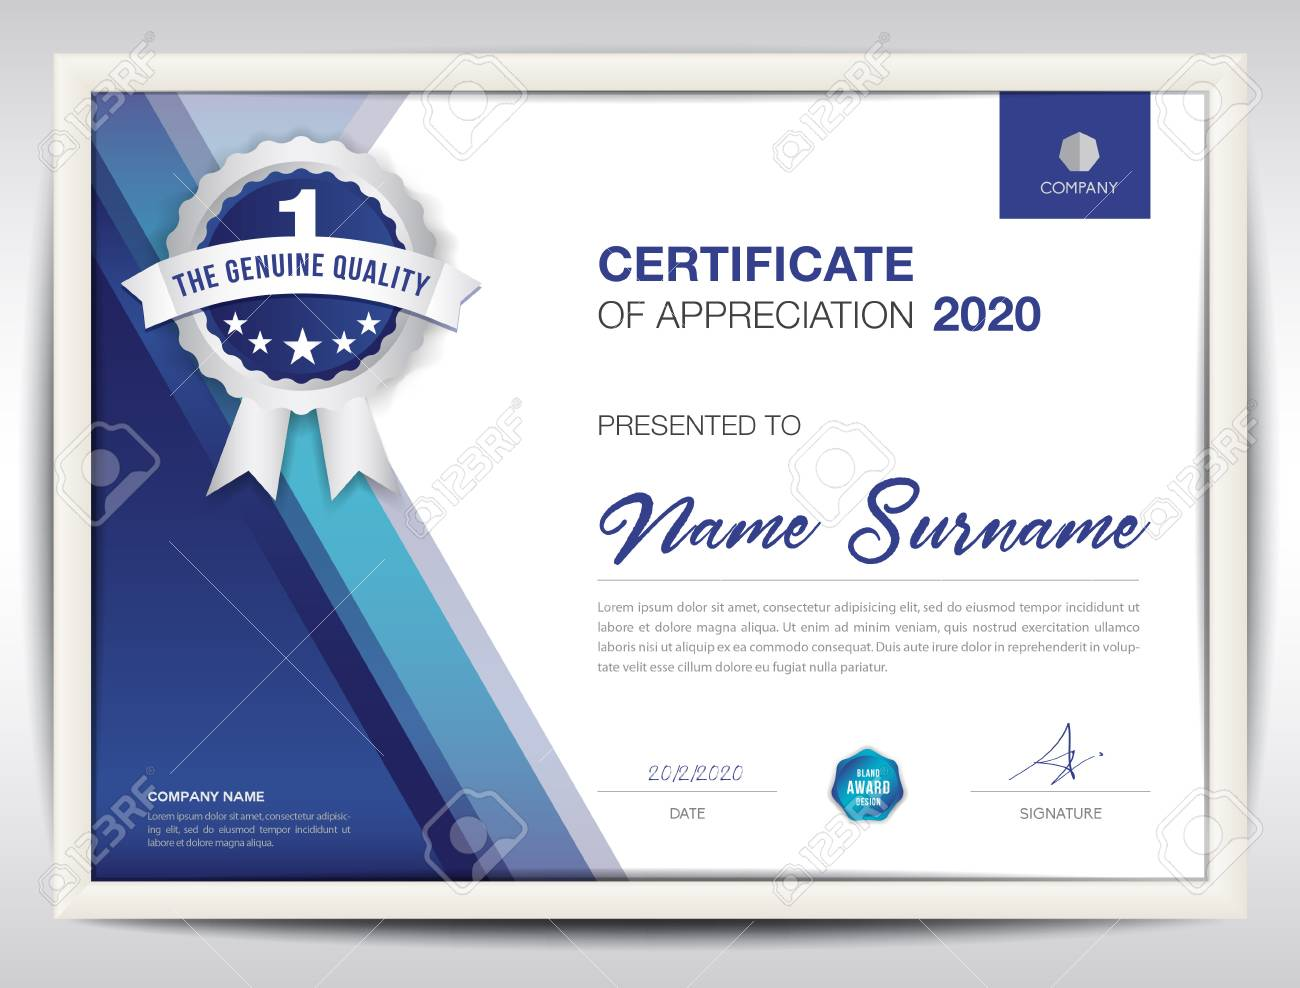 Certificate template vector illustration diploma layout in a4 certificate template vector illustration diploma layout in a4 size business flyer design advertisement wajeb Images